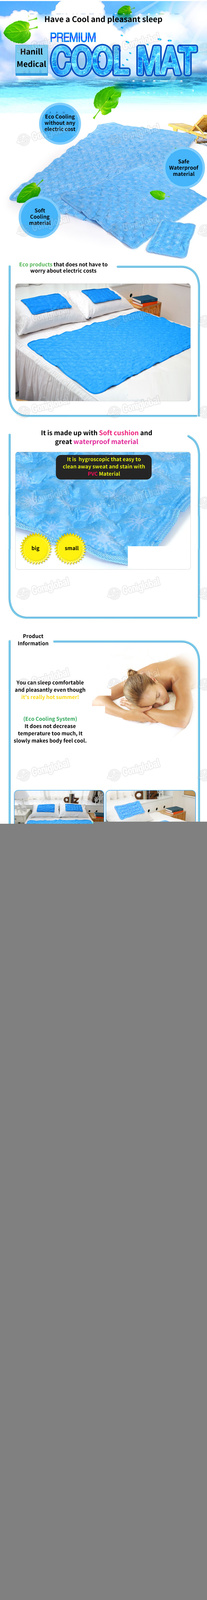 Hanil Hanil Medical PREMIUM Cool Mat / Pleasant Sleep / Eco-Cooling with no Elec